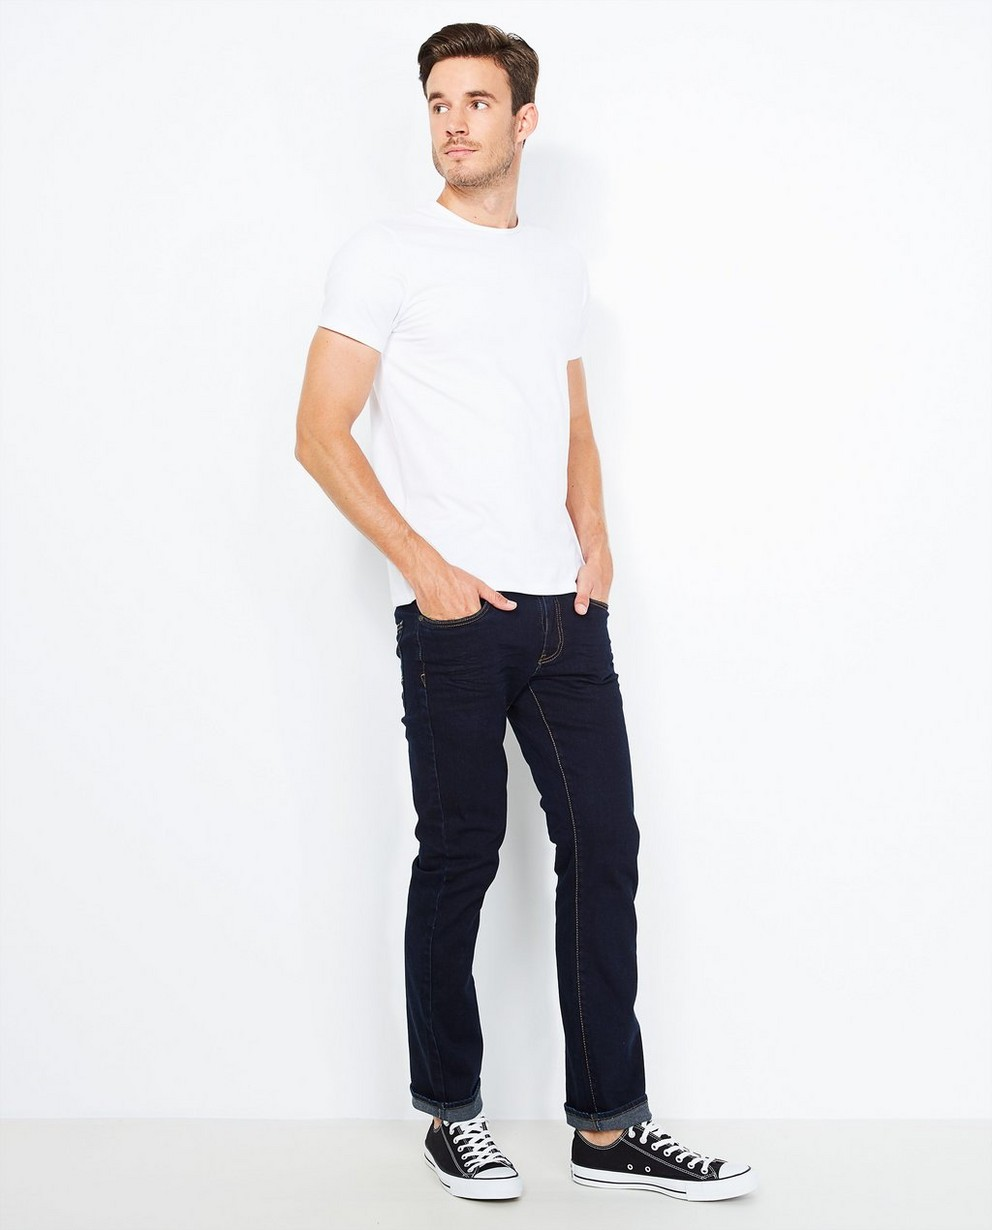 Jeans - navy - Fitted straight jeans BRANDON